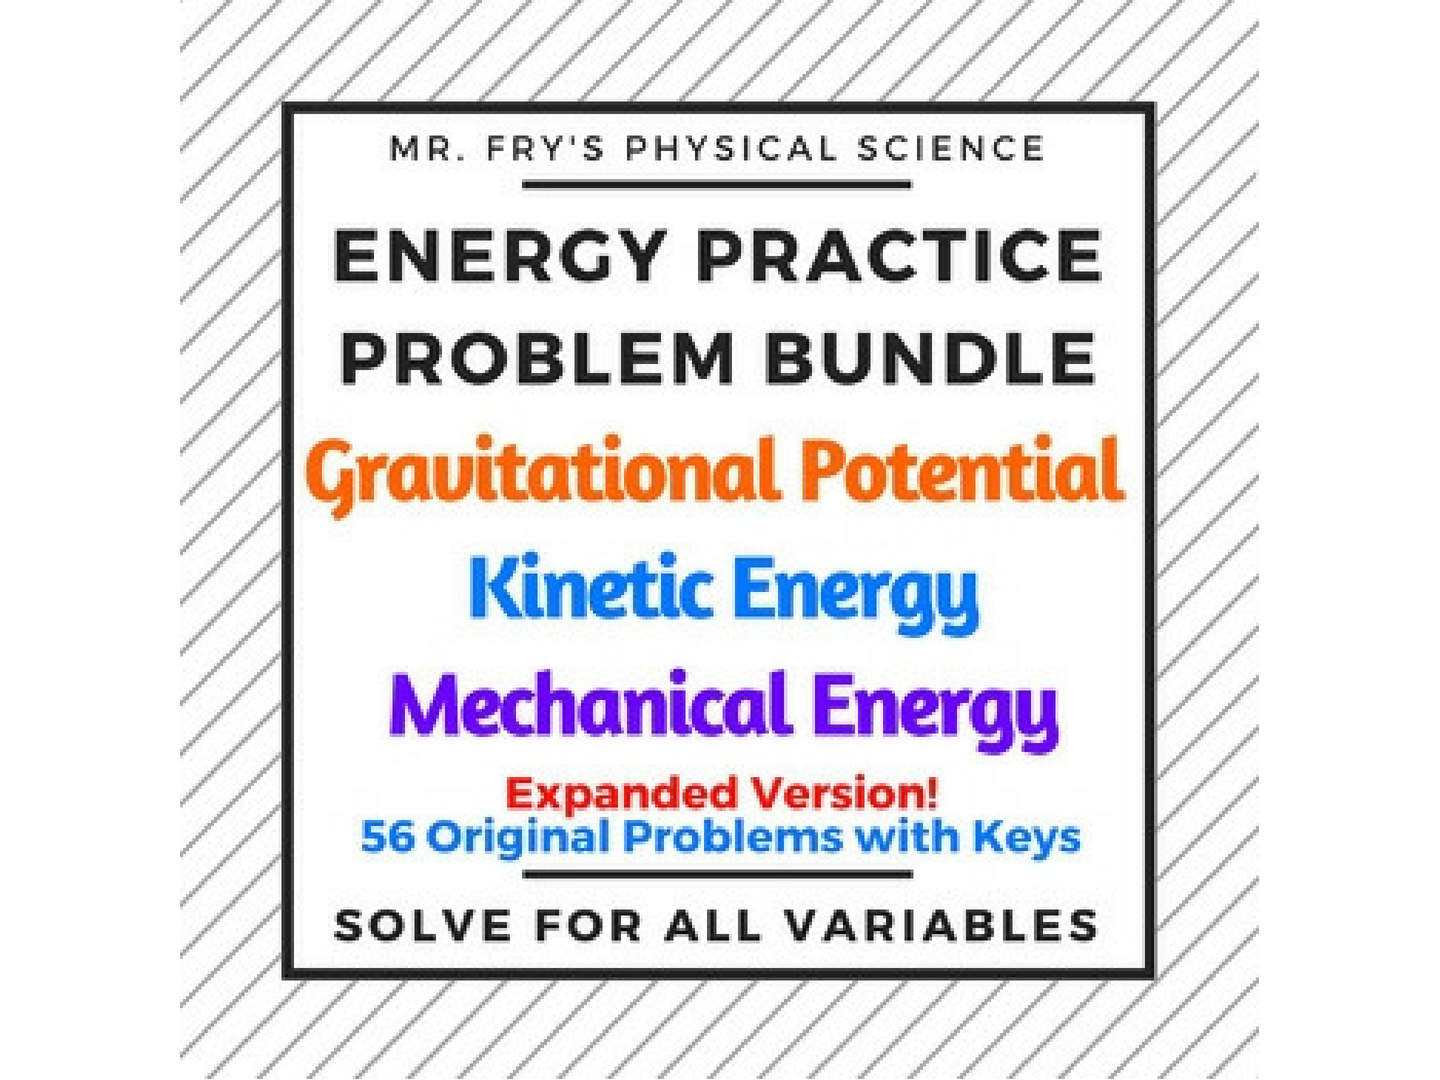 Energy Practice Problem Bundle